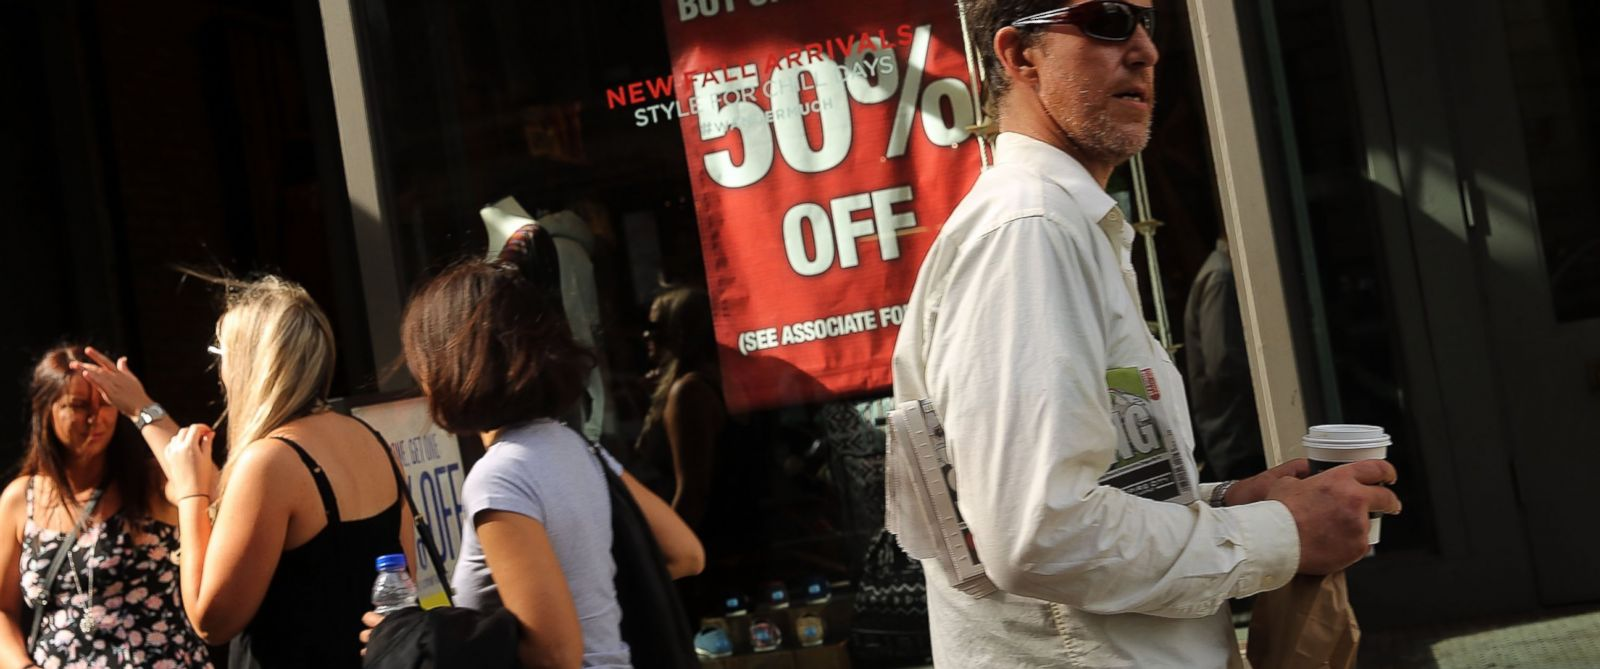 PHOTO: A sale sign is viewed in a Manhattan store on Oct. 15, 2014 in New York City.